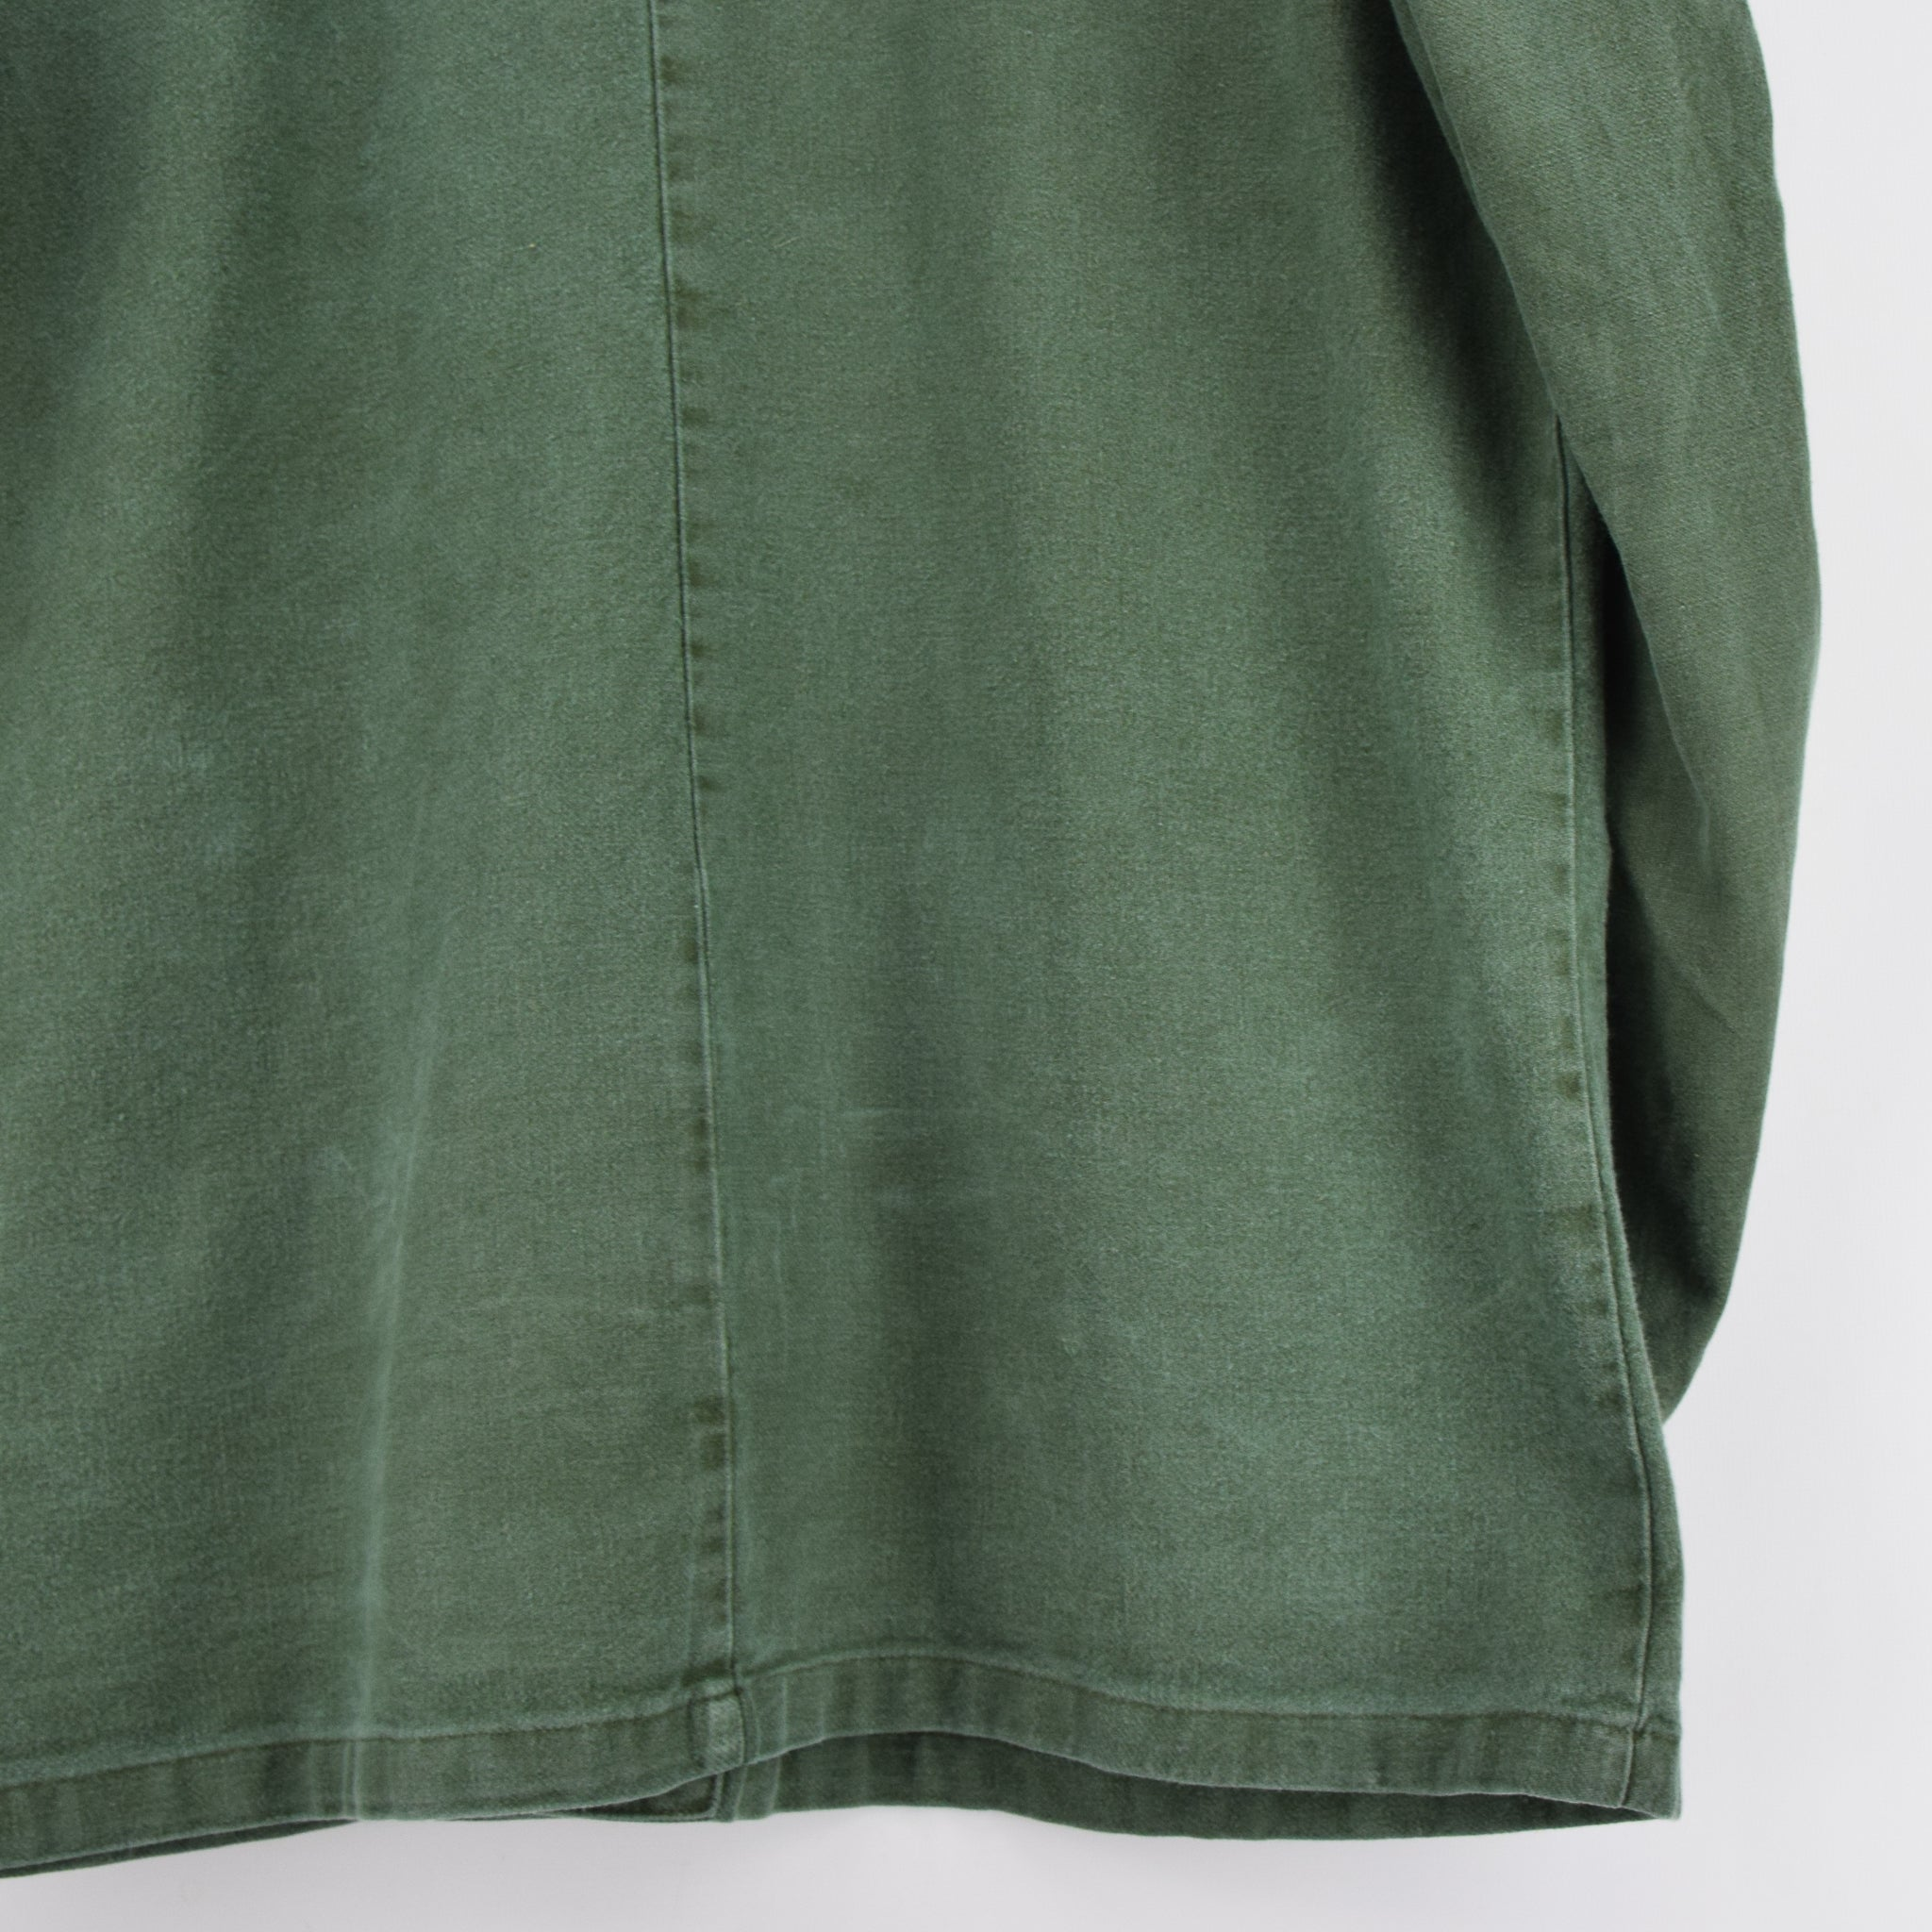 Vintage Swedish Worker Style Green Distressed Military Cotton Field Jacket M / L back hem